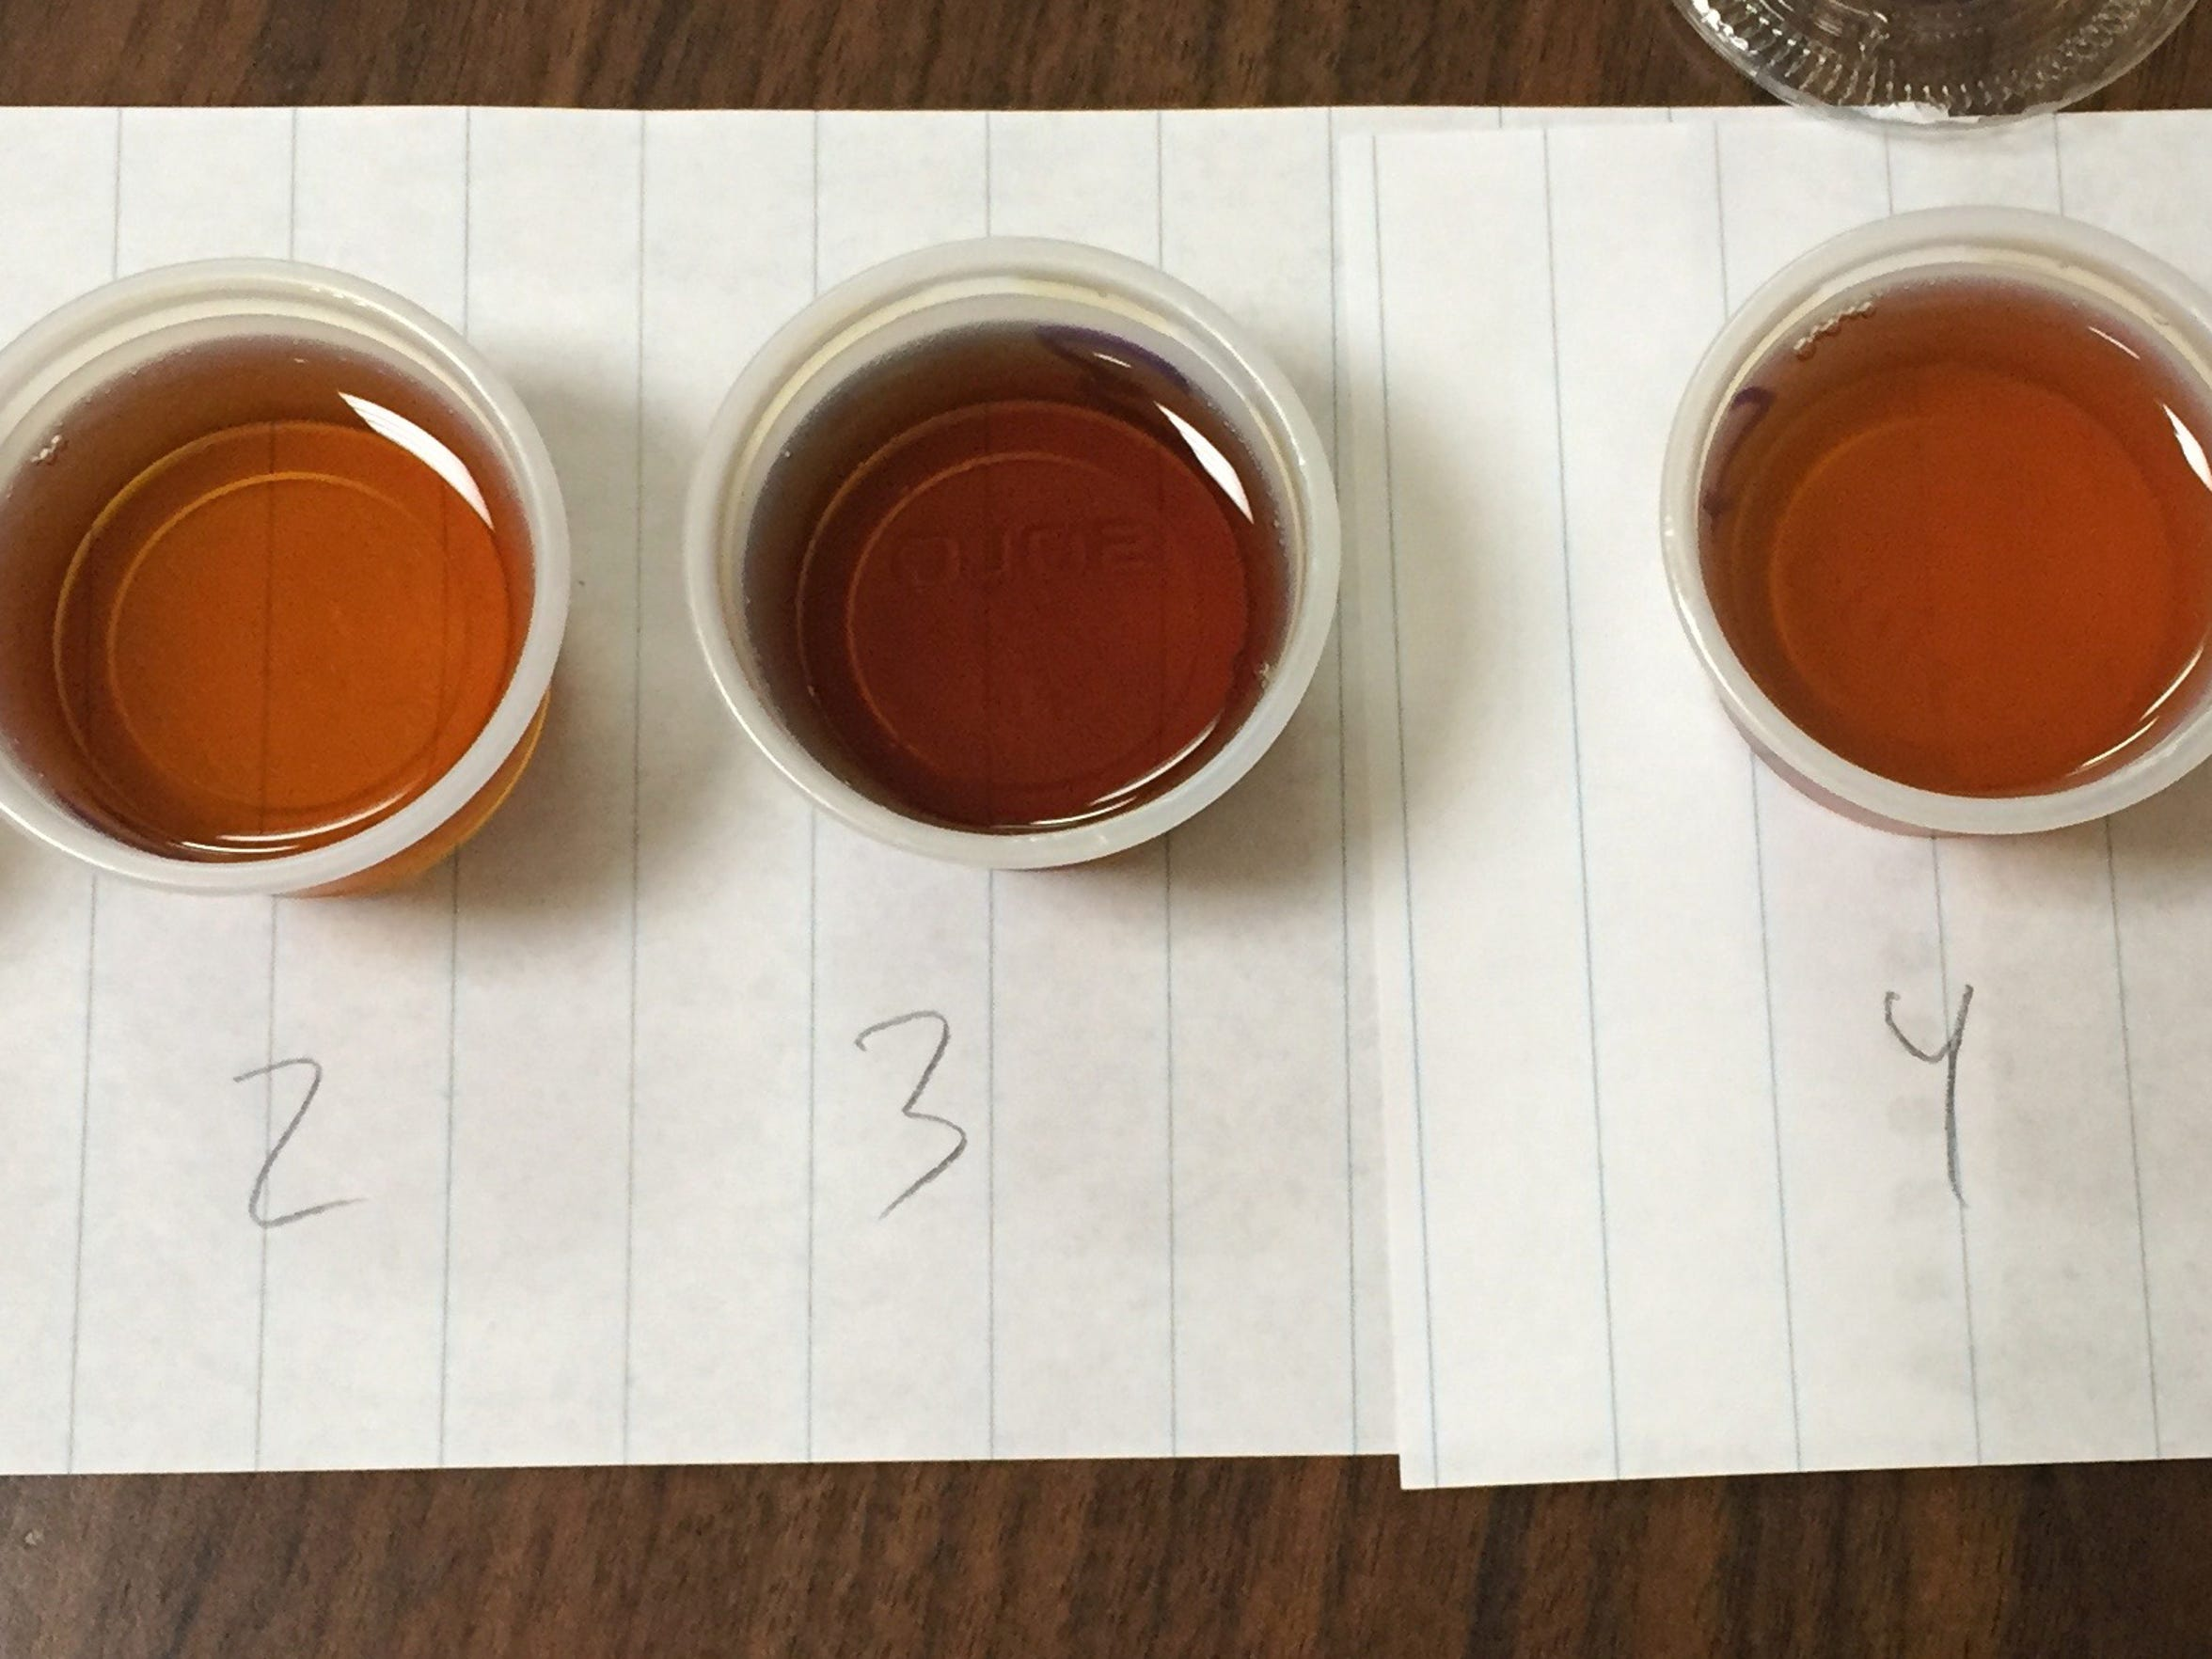 A News Leader blind tasting of Highland County maple syrup.